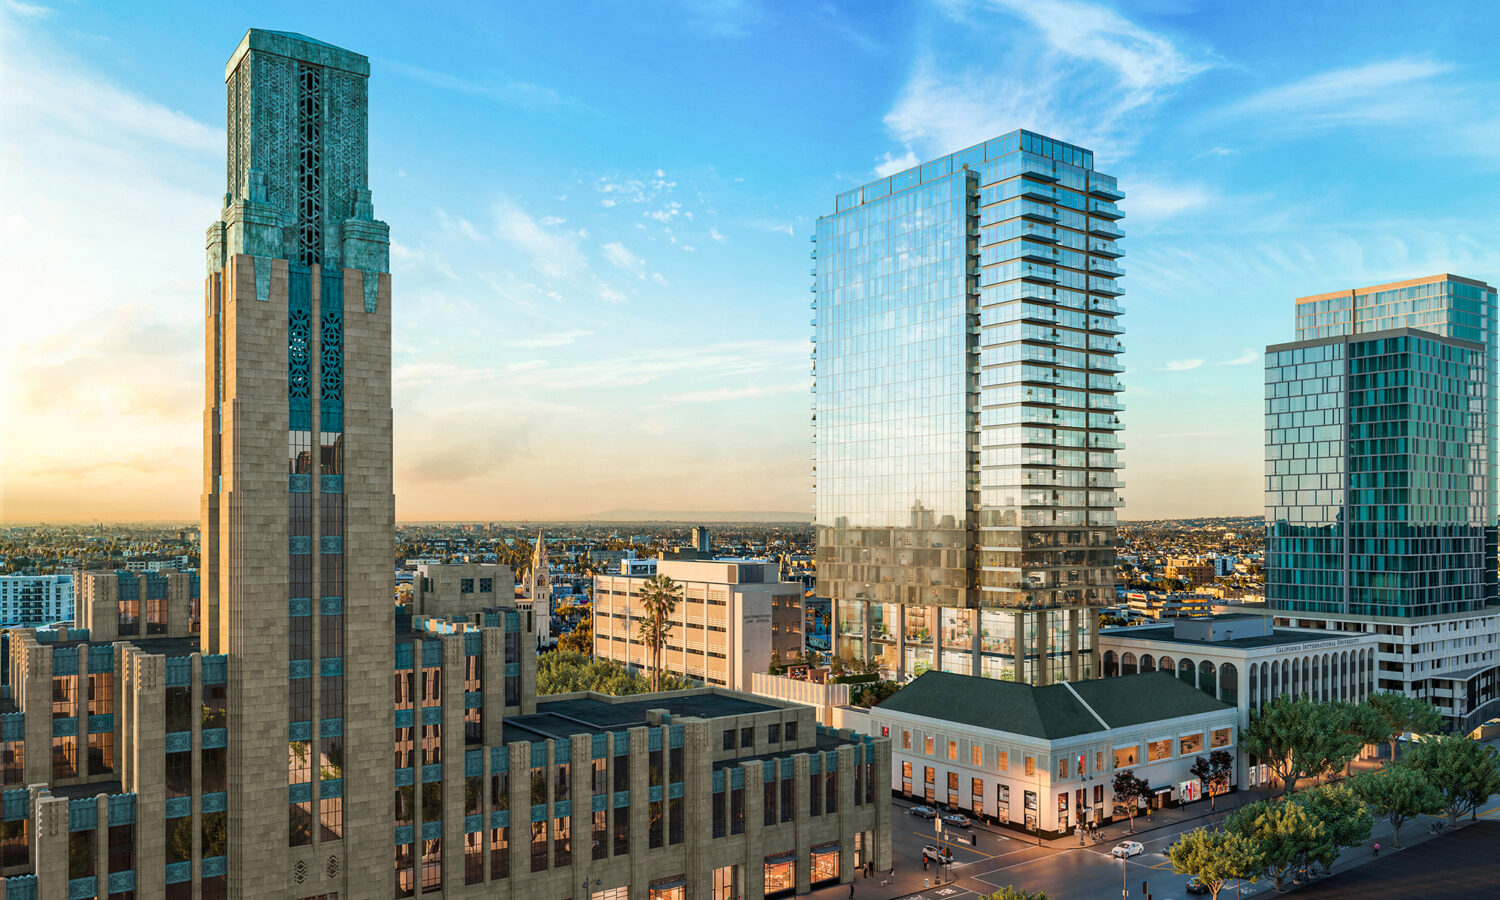 3181 Hpa 3100 Wilshire Blvd View02